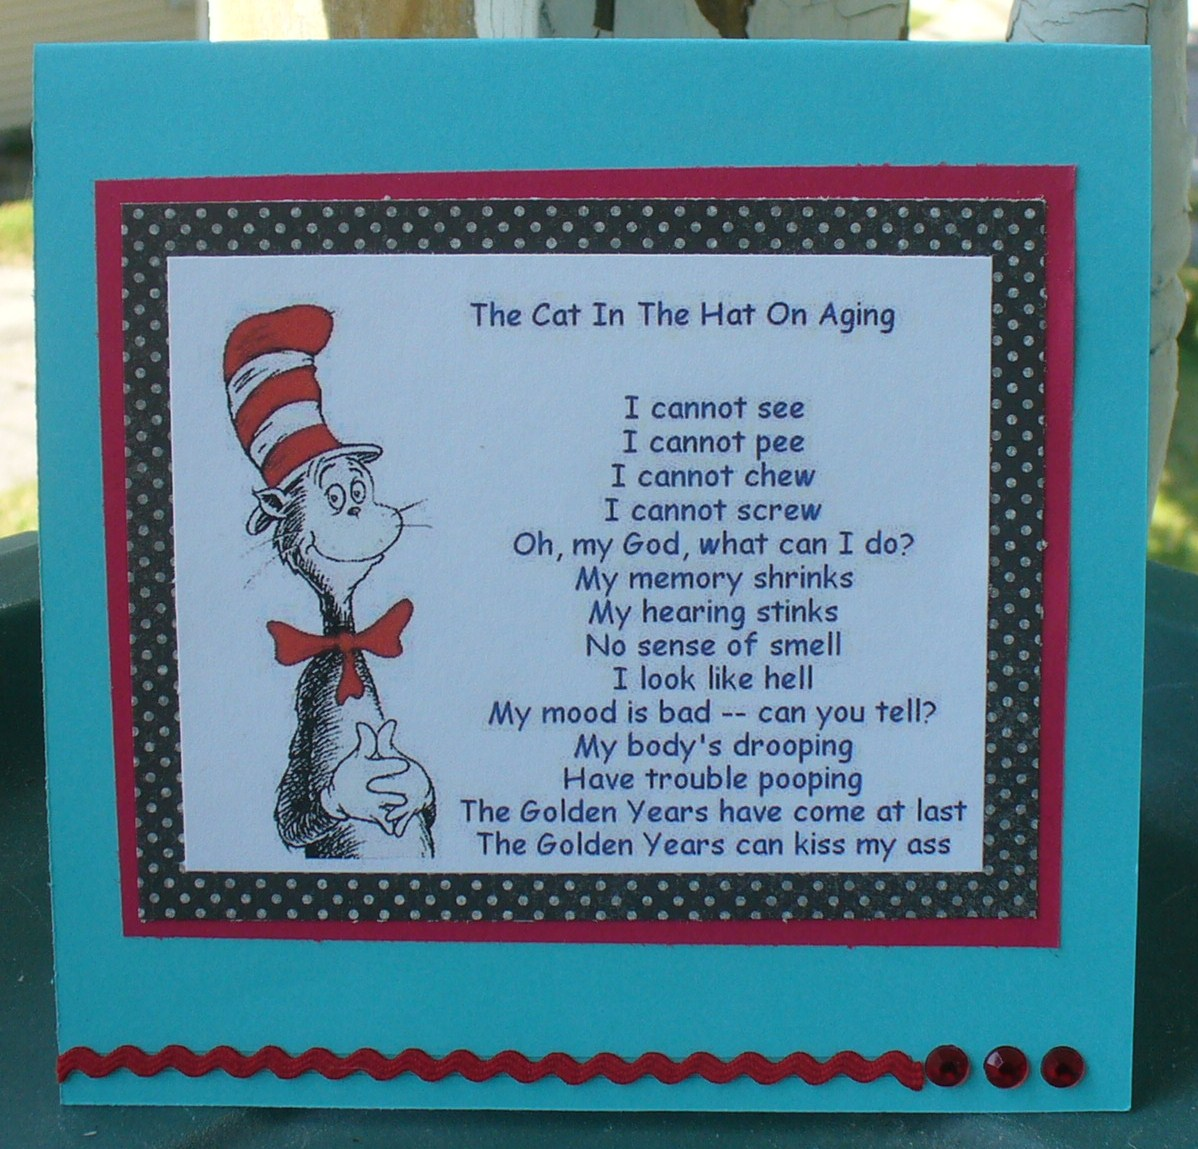 Dr Seuss Quotes On Aging. QuotesGram